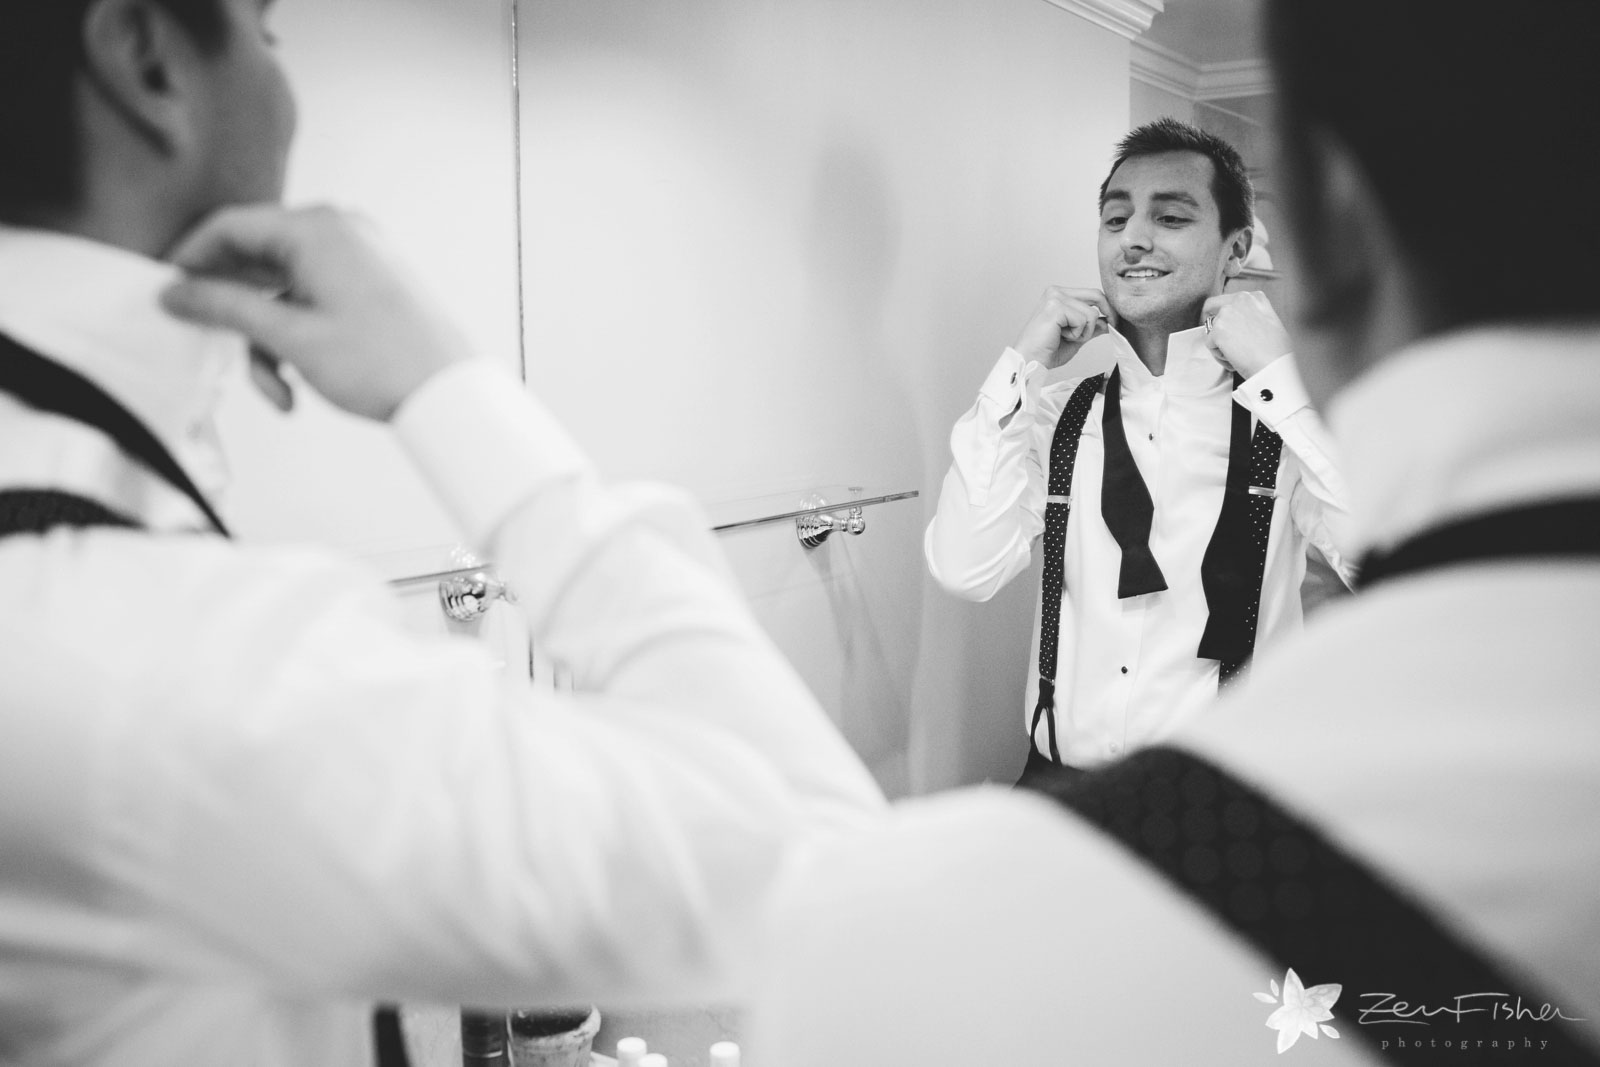 Groomsman getting ready in the hotel suite, looking in the mirror tying his bow tie.